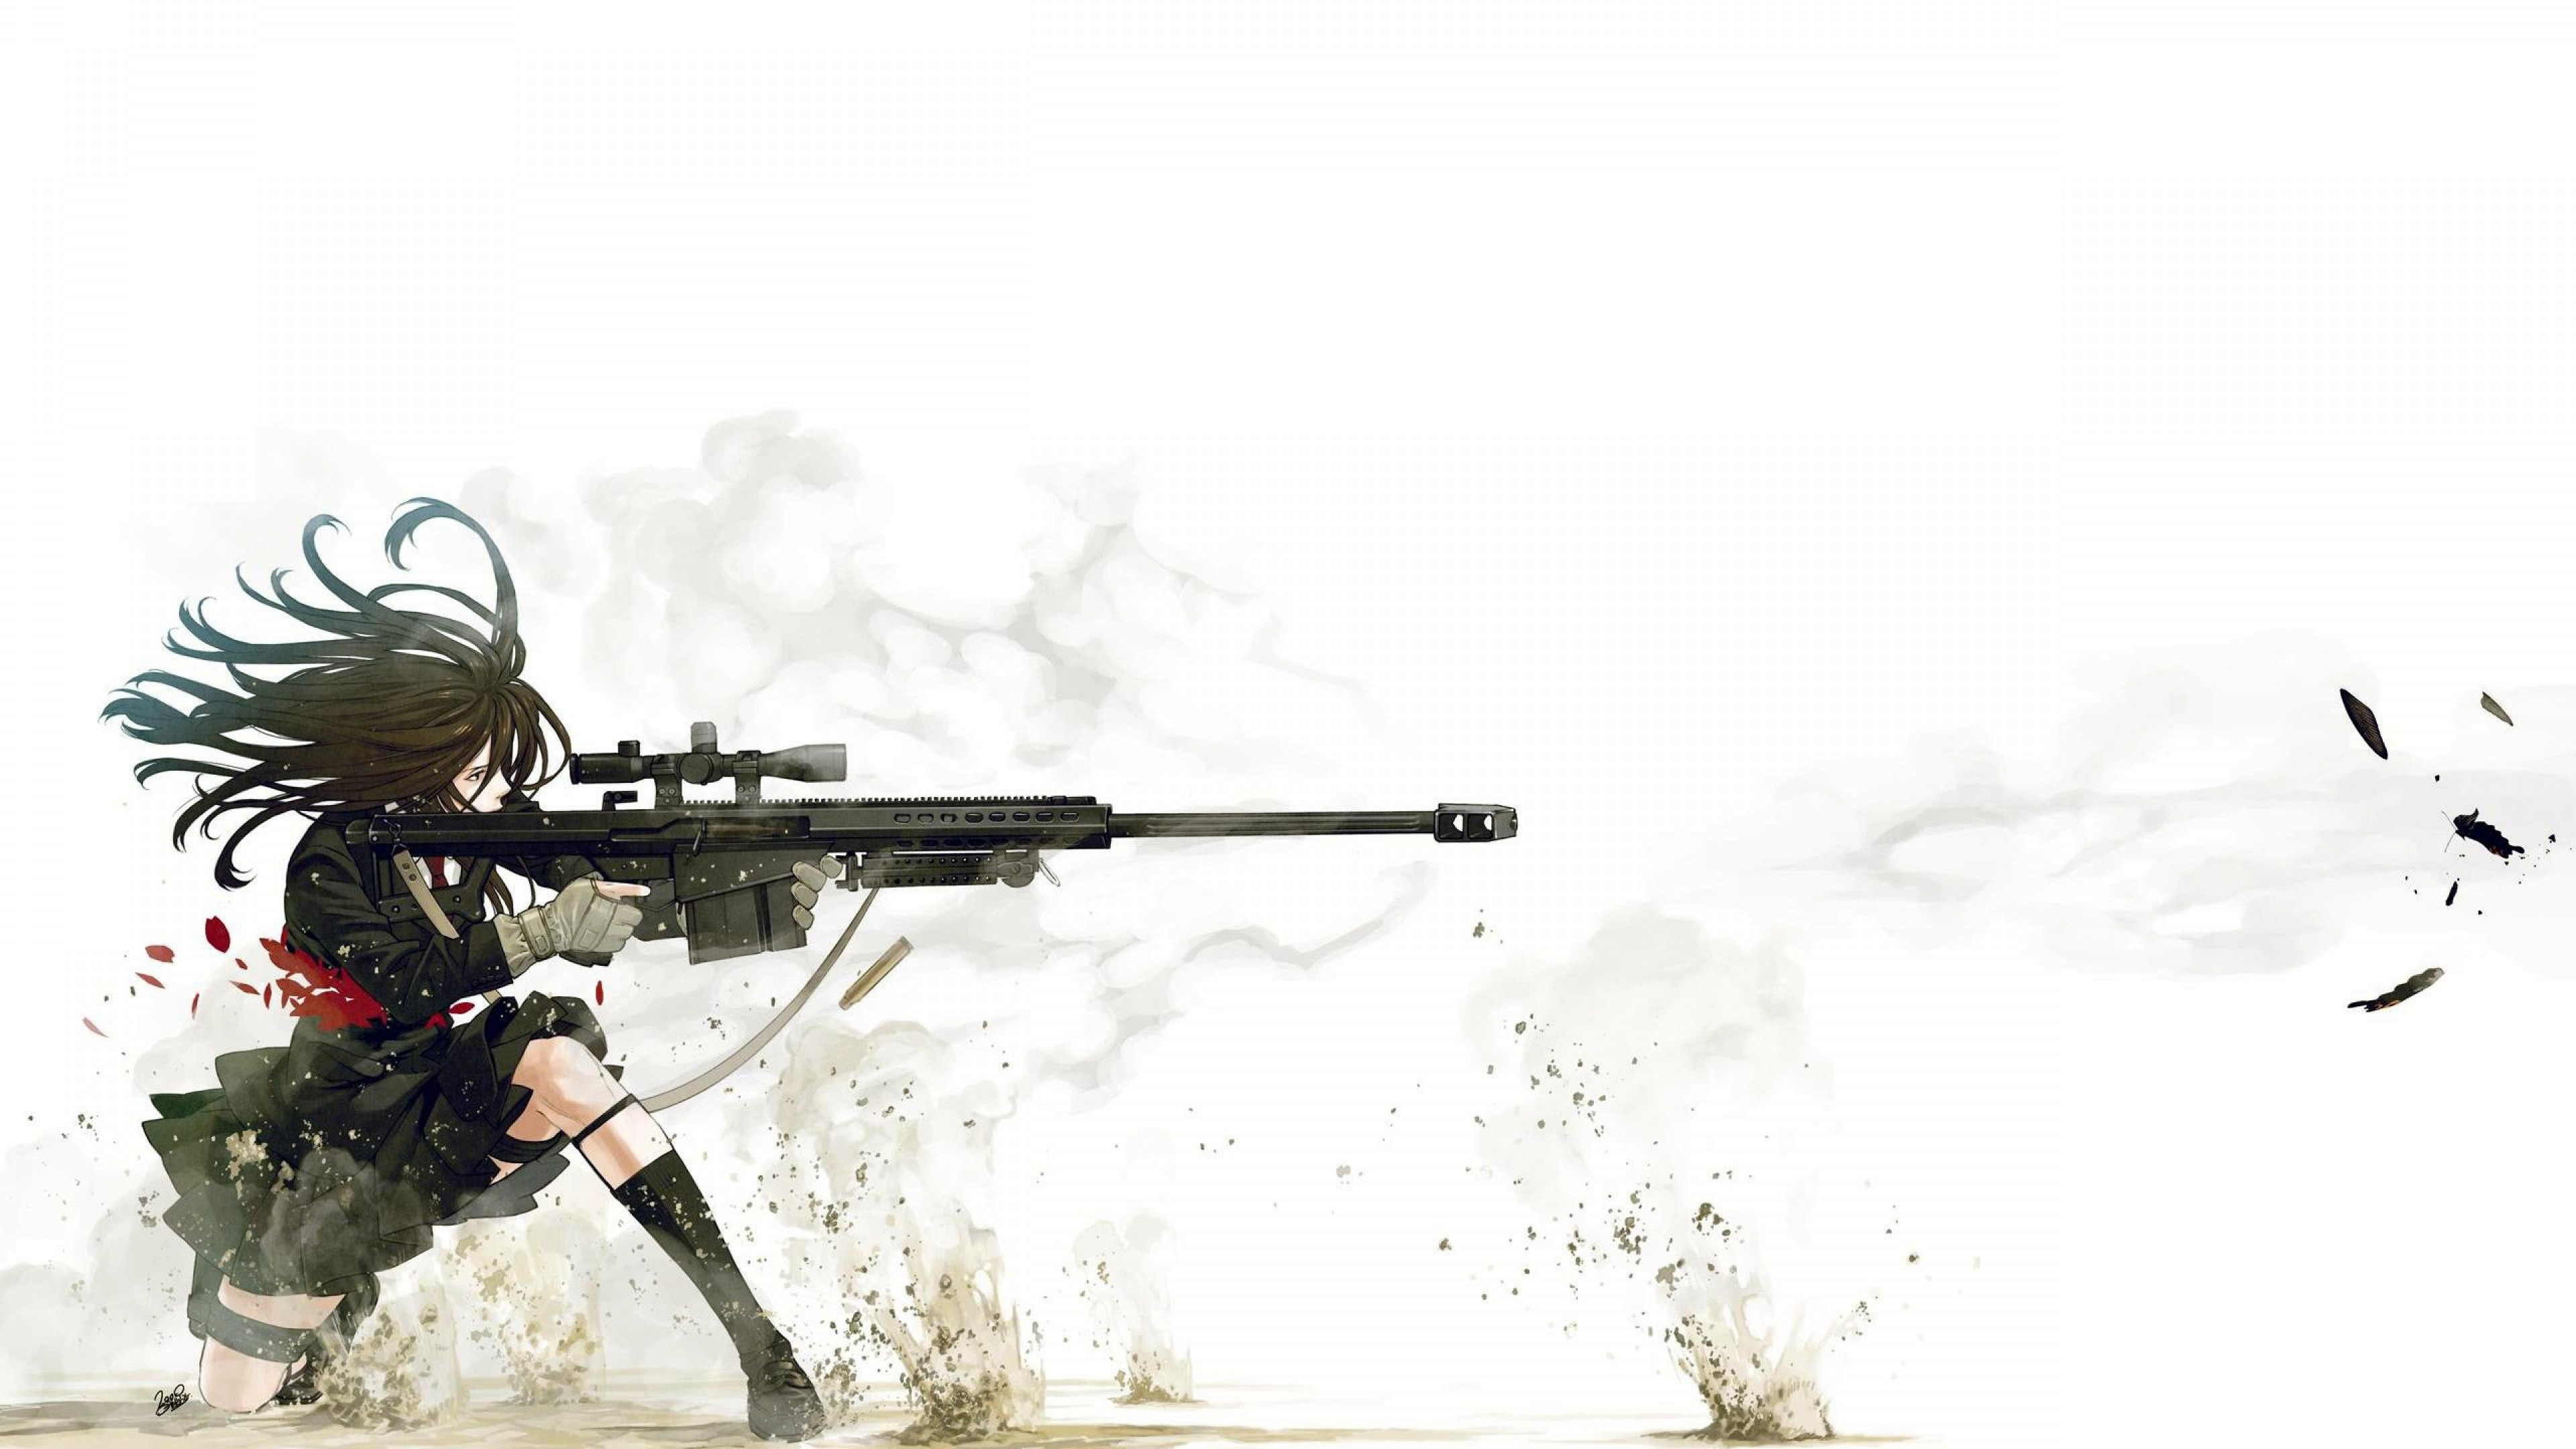 Anime Sniper Wallpaper For Desktop And Mobiles 4k Ultra Hd